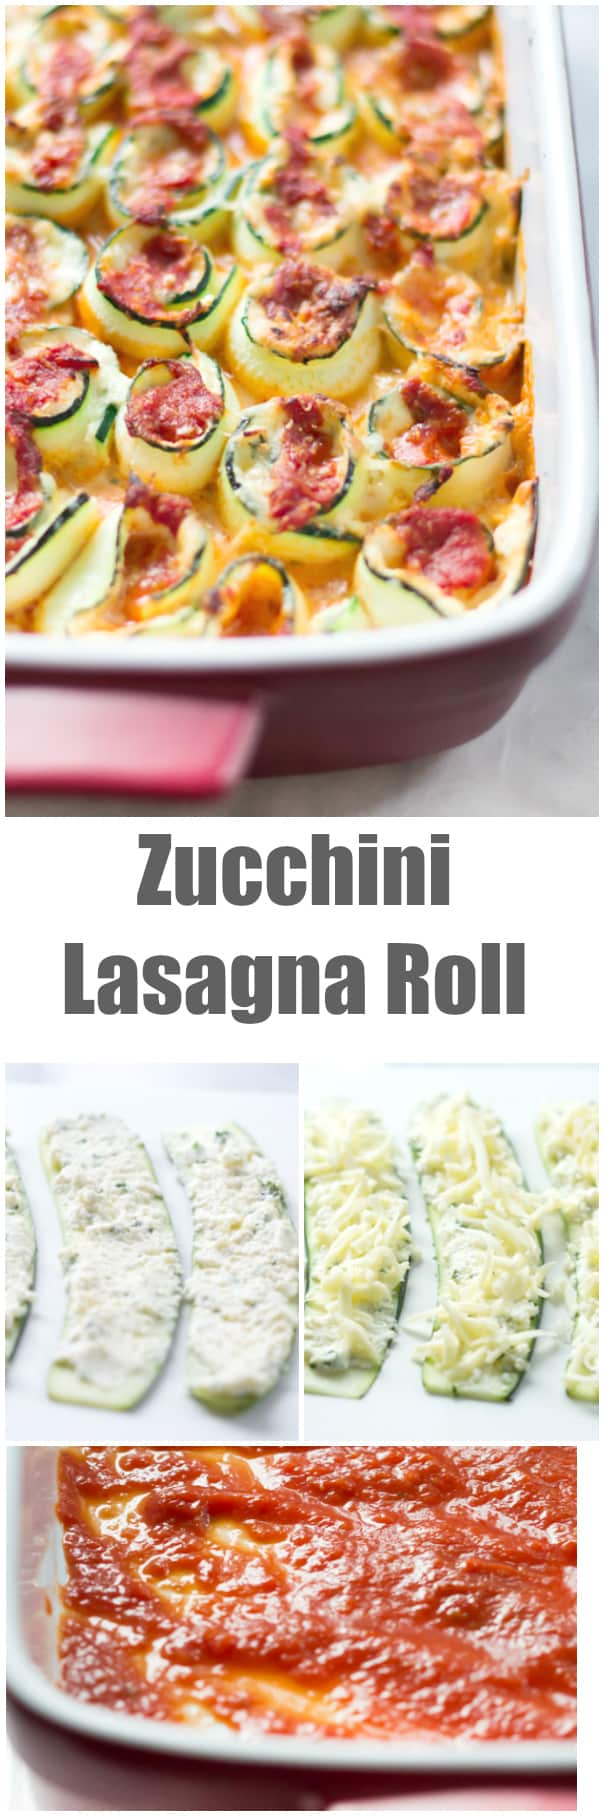 Zucchini Lasagna Roll - This gluten free Zucchini Lasagna Roll is healthy but with all the flavour of the traditional version. It is very easy to make and it is stuffed with zucchini, ricotta, Parmesan and topped with marinara and mozzarella cheese.